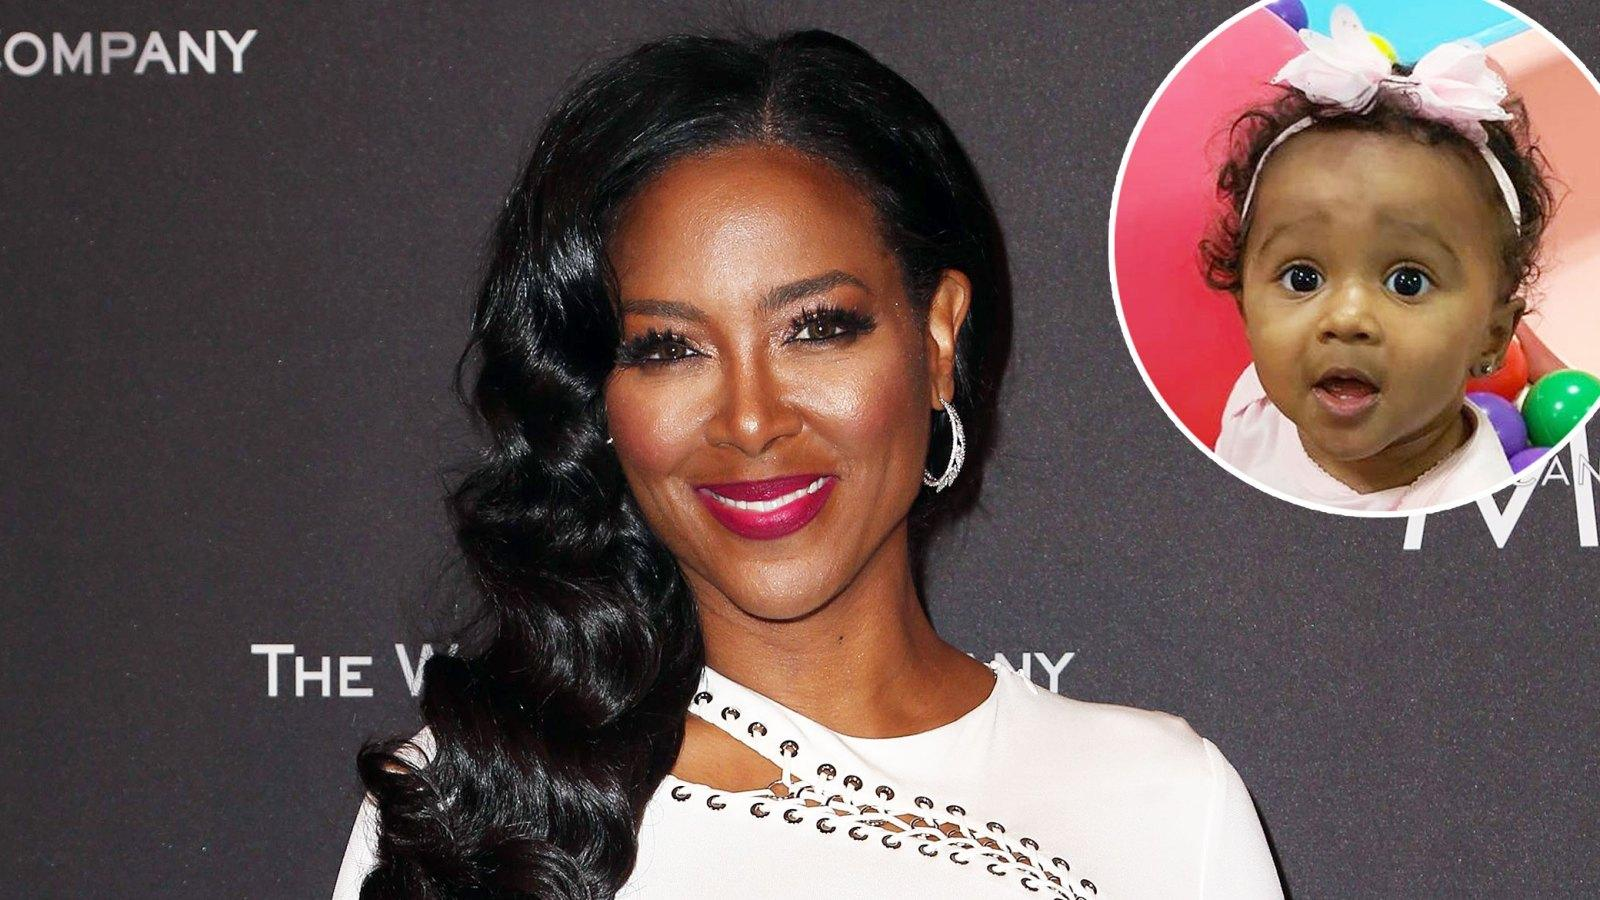 Kenya Moore's Baby Girl, Brooklyn Daly Is Showing Off Her Rich, Thick Hair While Taking A Walk Around The House - Fans Go Crazy With Excitement